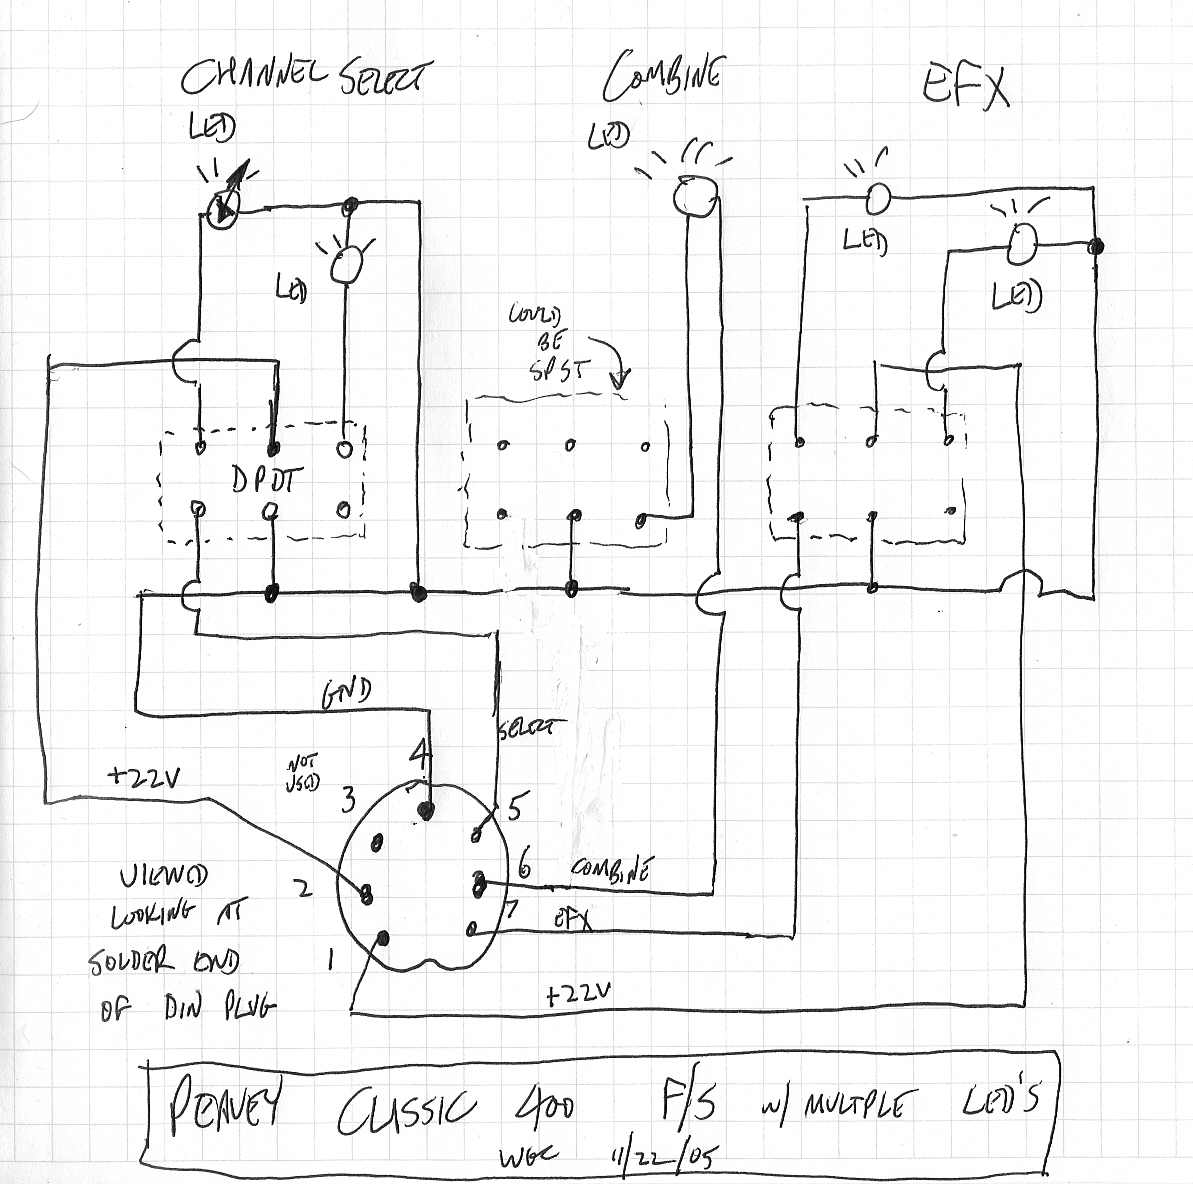 4 Wire 200 Amp Meter Disconnect Diagram | Wiring Schematic Diagram  Wire Amp Disconnect Wiring Diagram on 200 amp service disconnect, 200 amp disconnect installation, 200 amp disconnect parts, 200 amp disconnect breaker, meter base wiring diagram, amp meter wiring diagram, 50 amp service wiring diagram, 200 amp main breaker panel, amp gauge wiring diagram, 200 amp wiring requirements, 200 amp disconnect dimensions, 200 amp disconnect box, 200 amp electrical disconnect, 200 amp electric service, car amp installation diagram, meter socket wiring diagram, 200 amp disconnect accessories, bridged amp diagram, 200 amp disconnect with meter, service panel diagram,